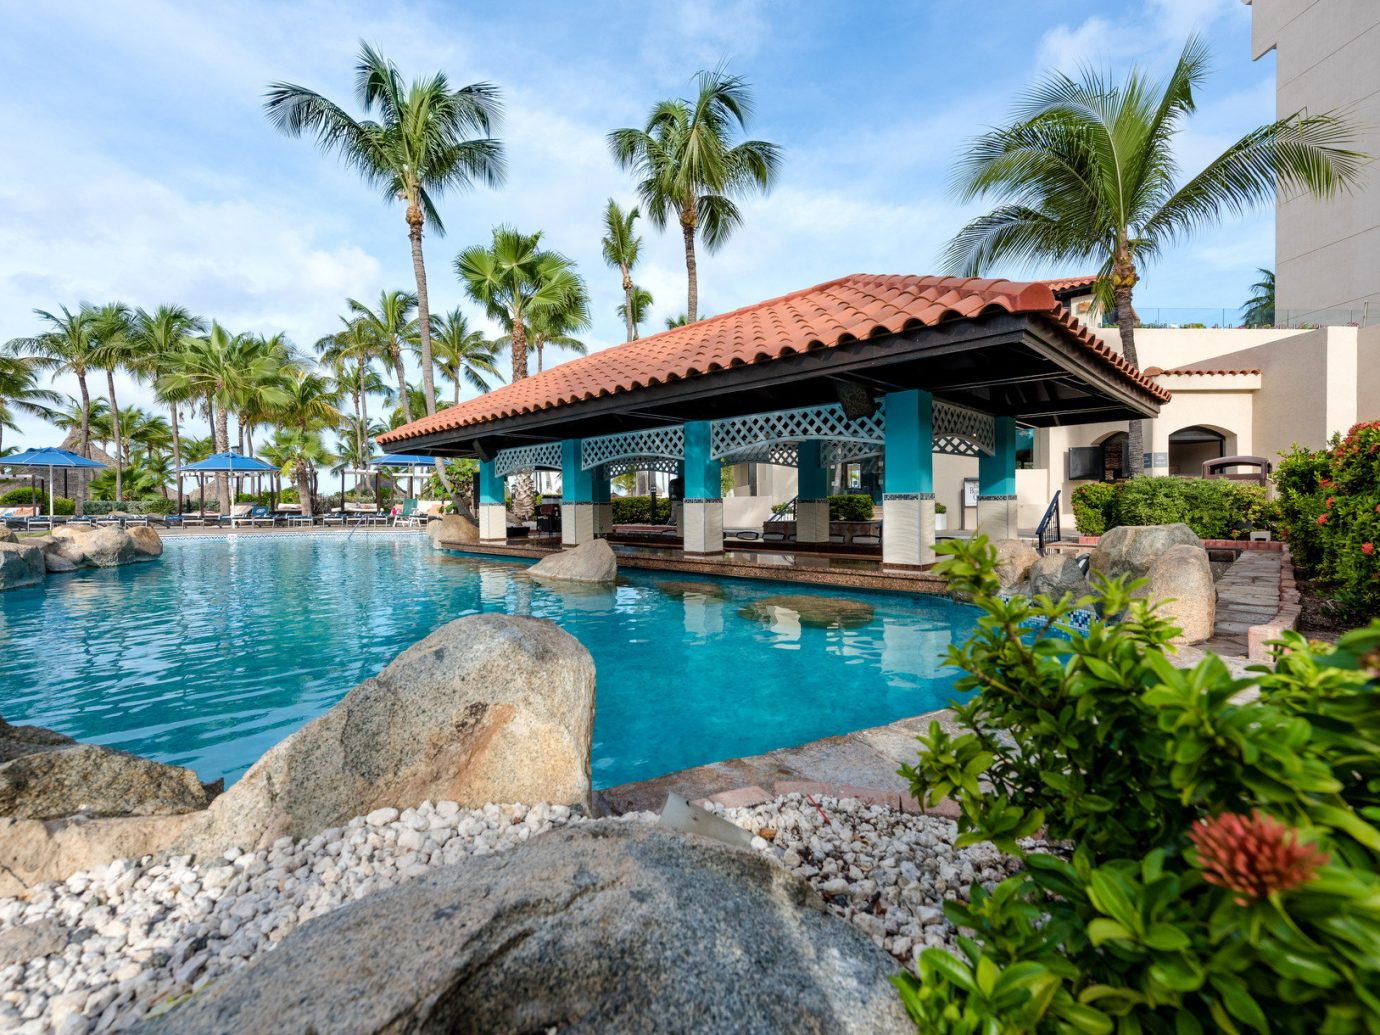 Hotels outdoor tree sky building water rock house property Pool Resort estate vacation swimming pool tourism home Villa mansion Village stone swimming Garden